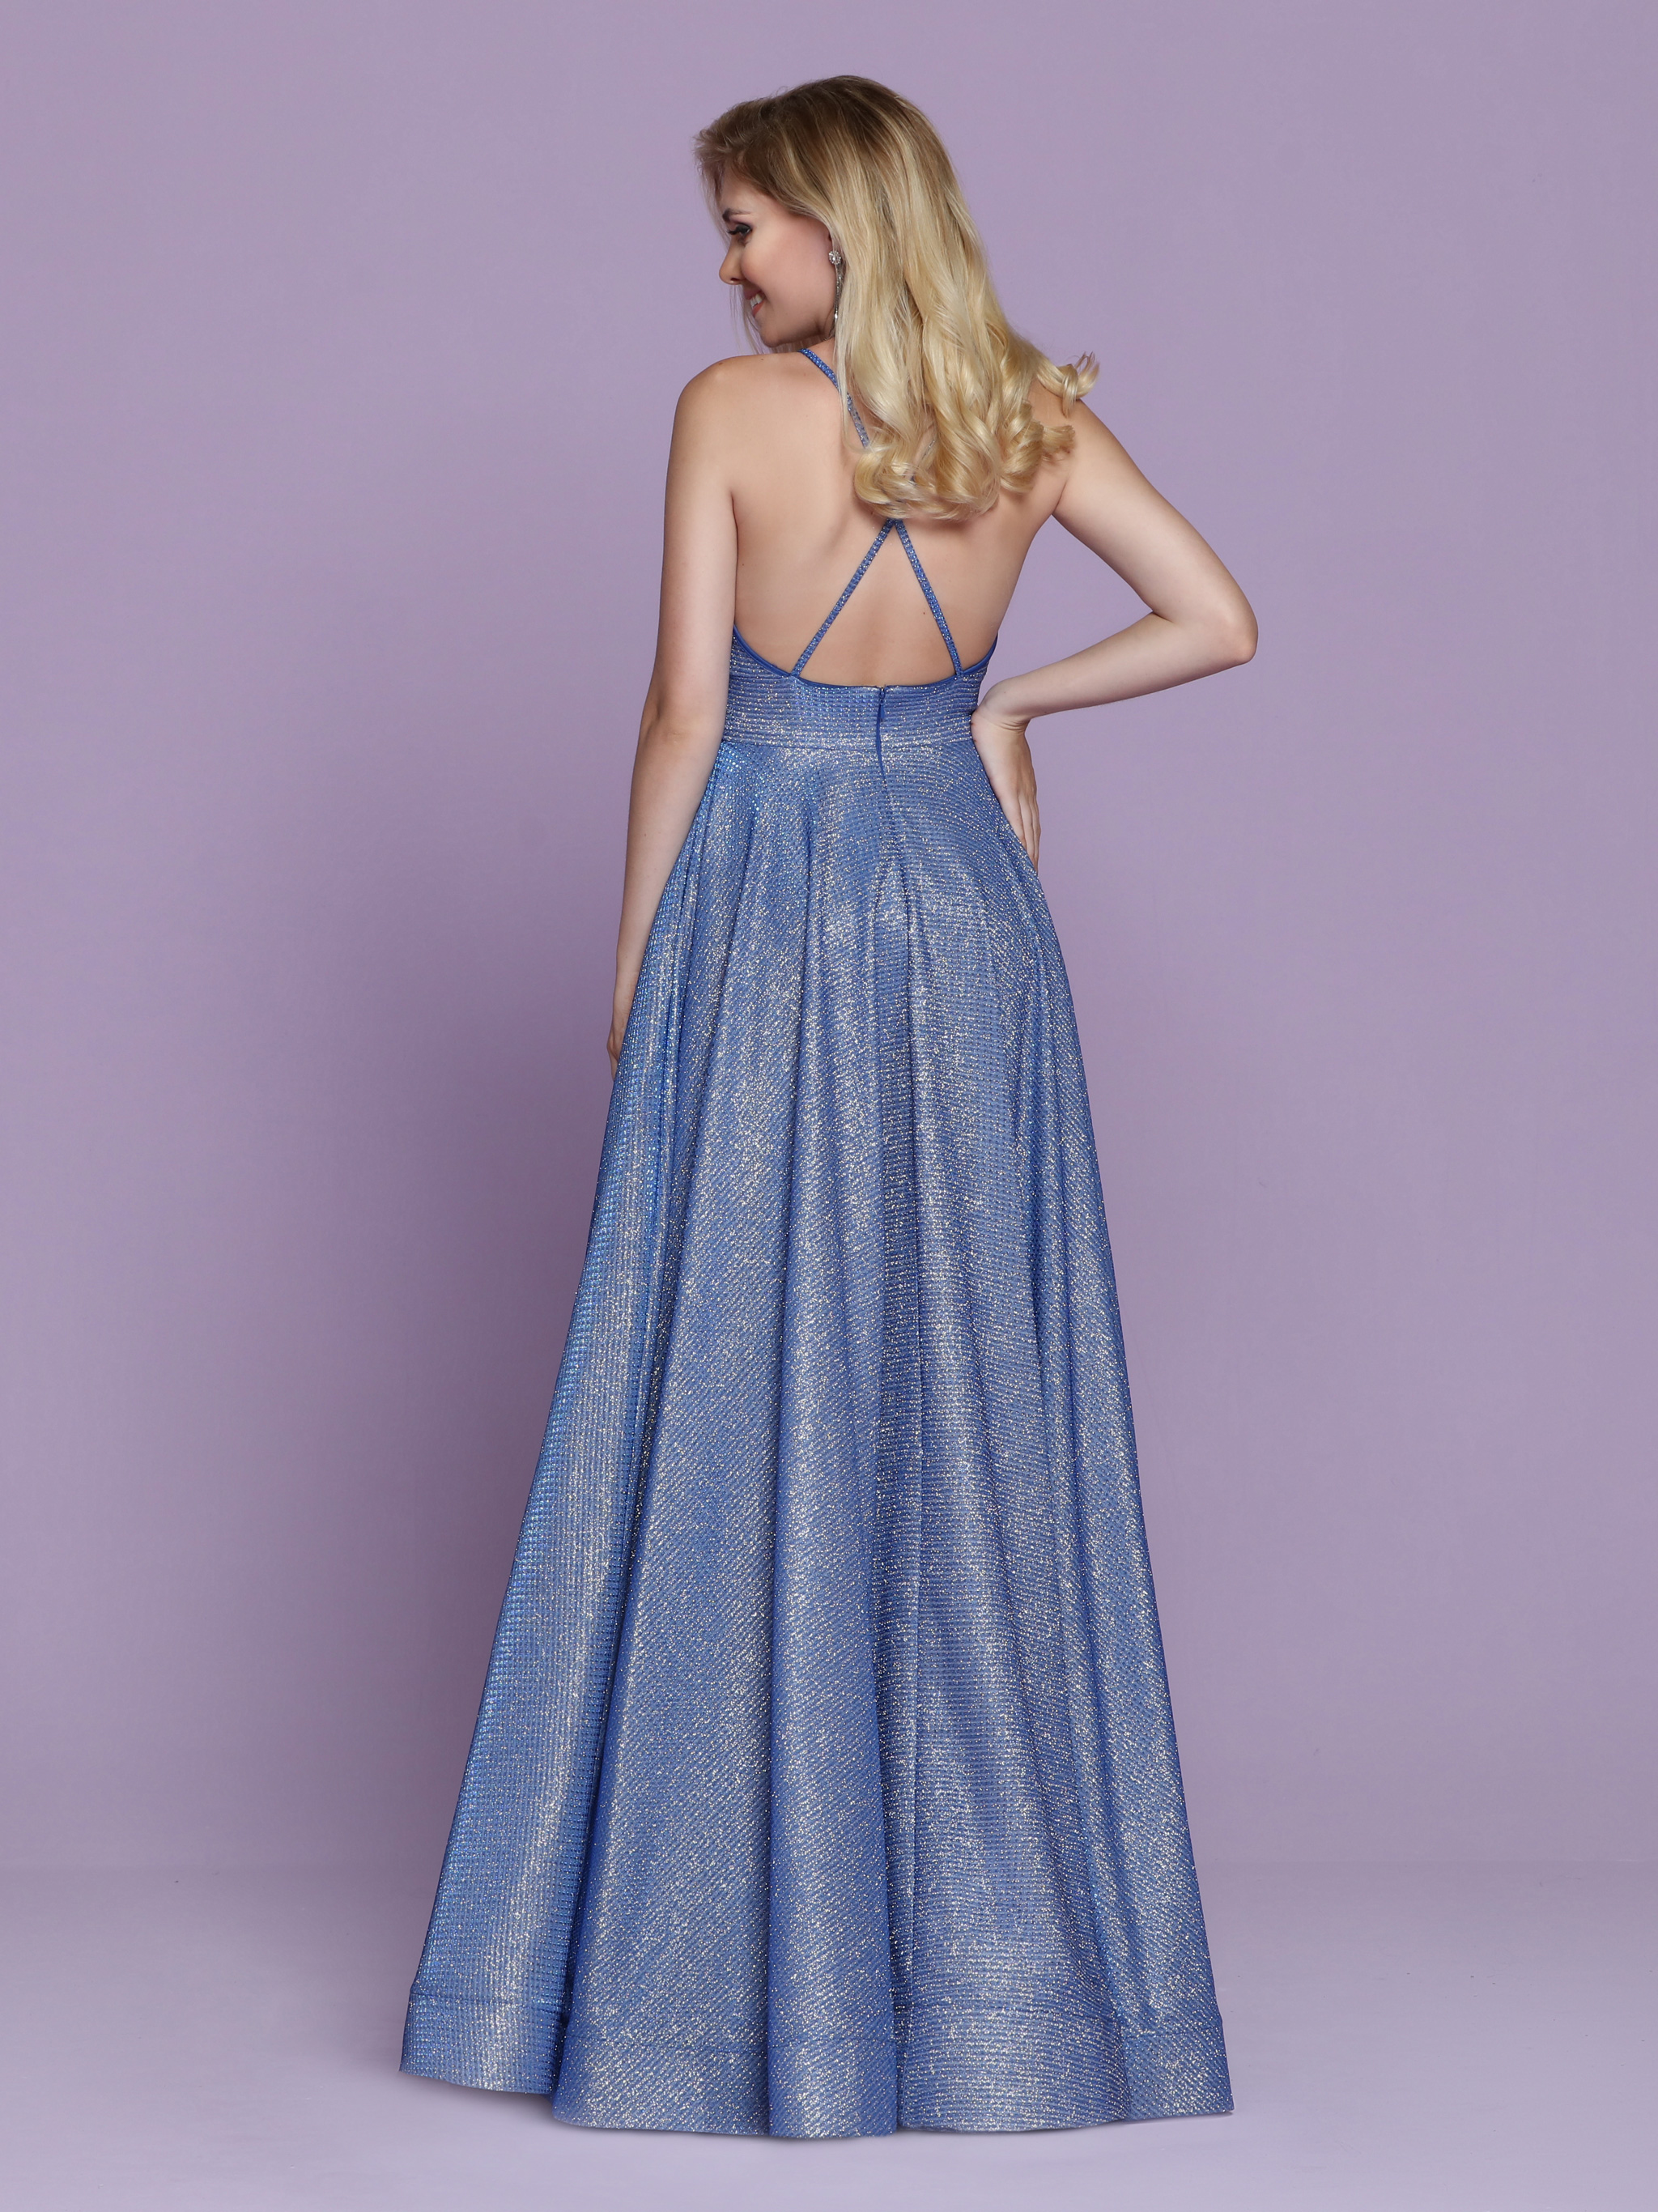 Image showing back view of style #72059